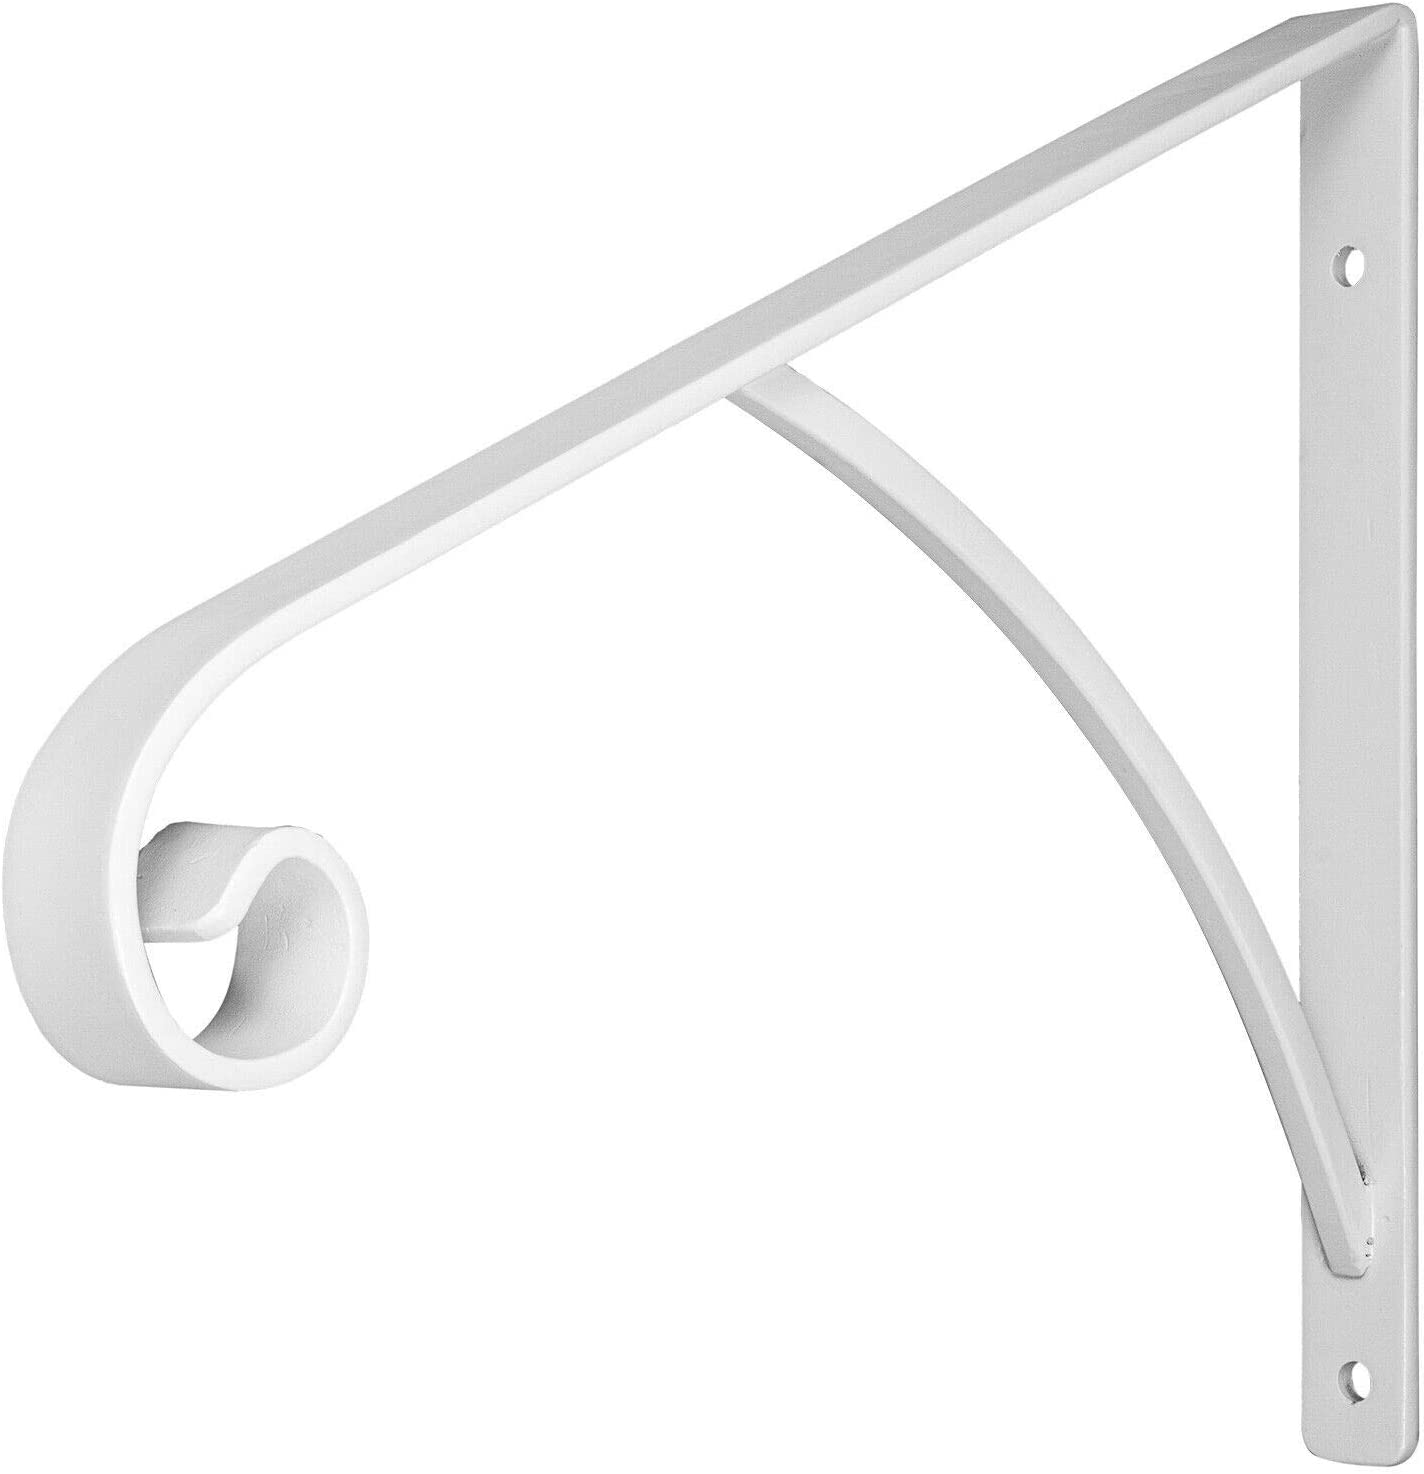 BuoQua Grab Supports Wrought Iron Fits 1 or 2 Steps Post Mount Step Grab Rail for 1 to 2 Step Wrought Iron Grab Rail Solid Hand Rail Stairs Wrought Iron Metal Stair Rail Steel Flat Bar Gloss White